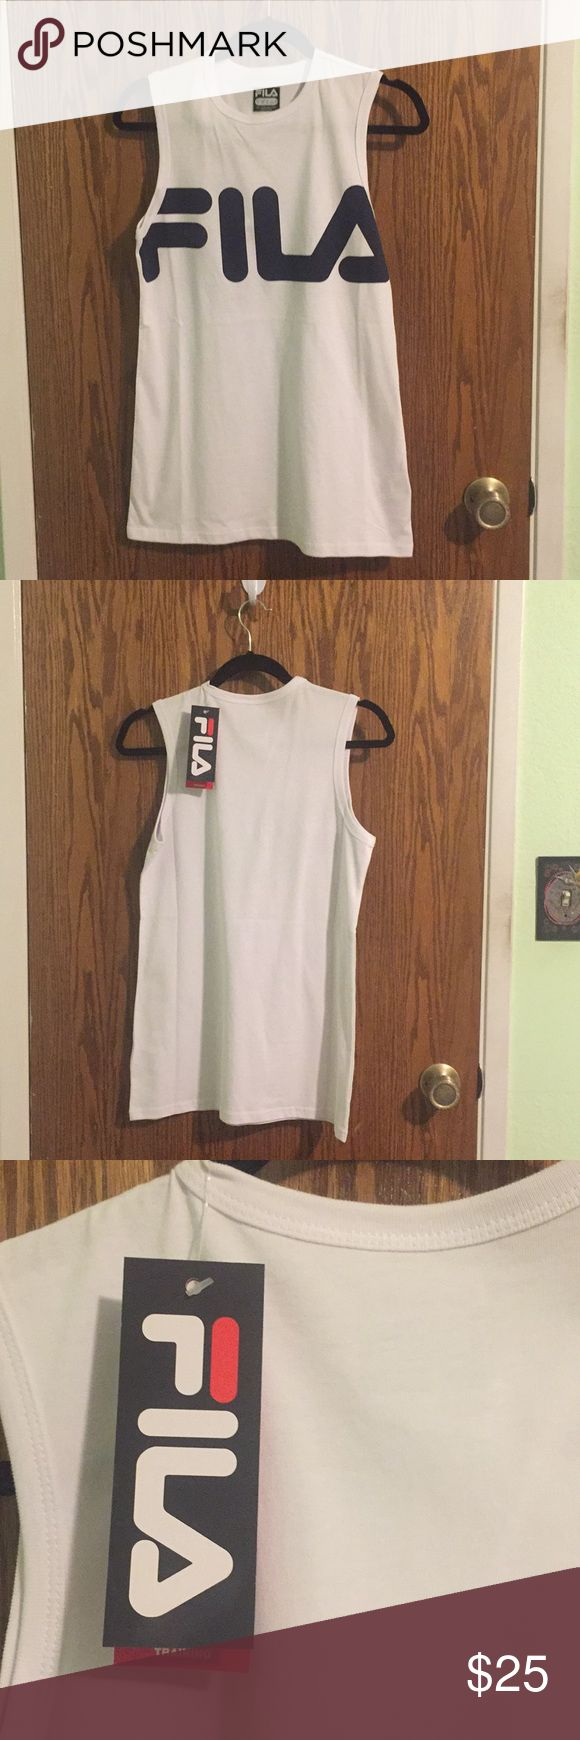 Hype Bae Fila sleeveless tee Muscle tank / sleeveless tee by Hype Beast sportswear brand Fila. New, never been worn. Fila Tops Muscle Tees